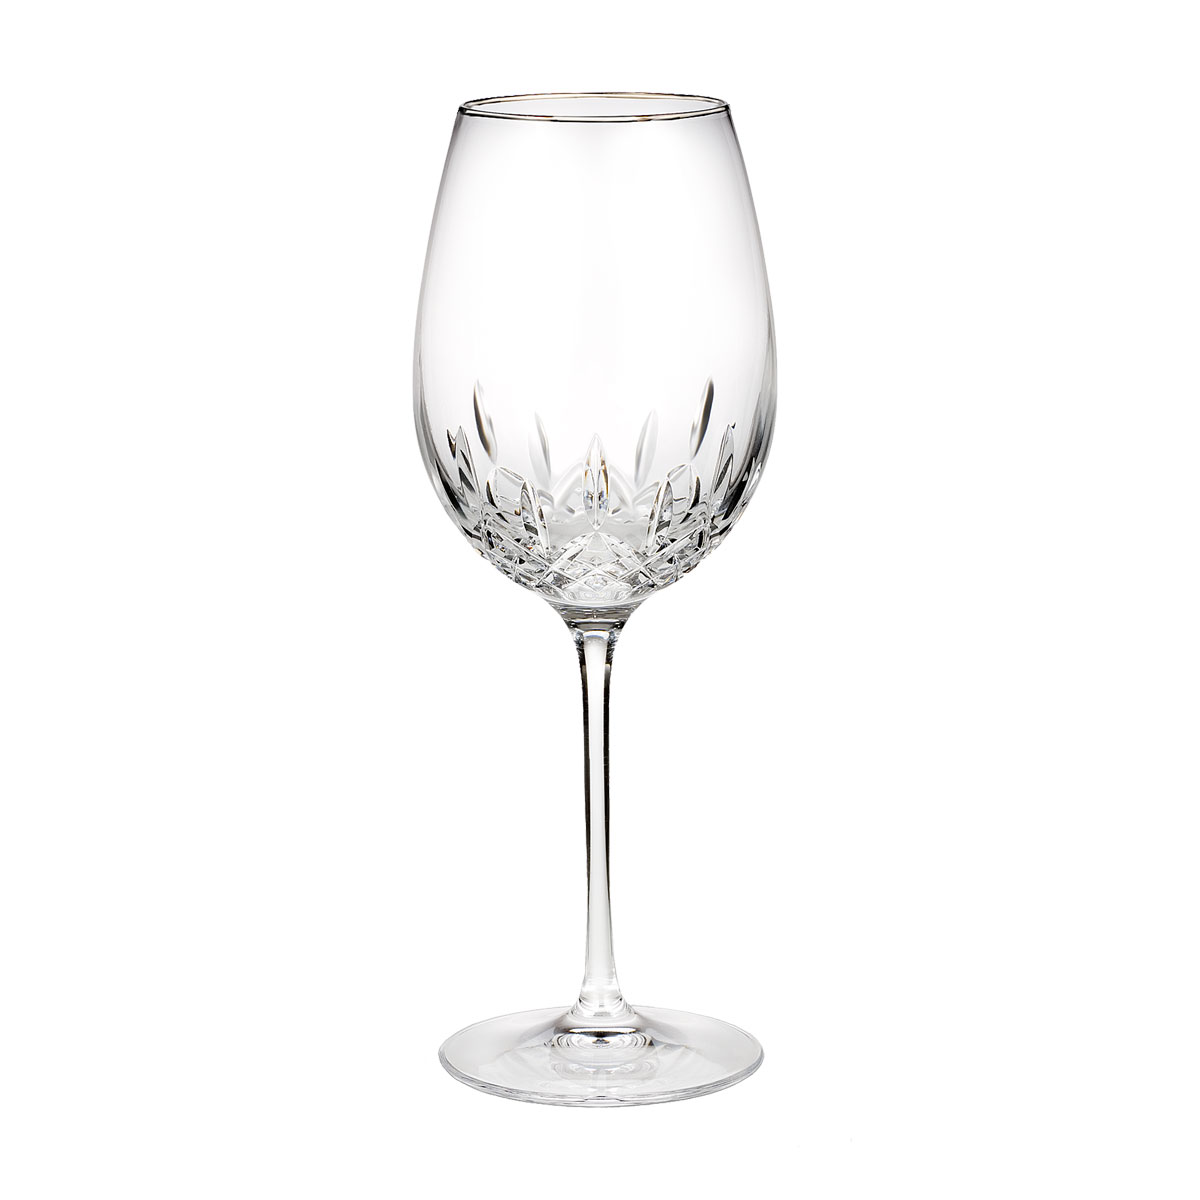 Waterford Crystal, Lismore Essence Platinum Crystal Goblet, Single